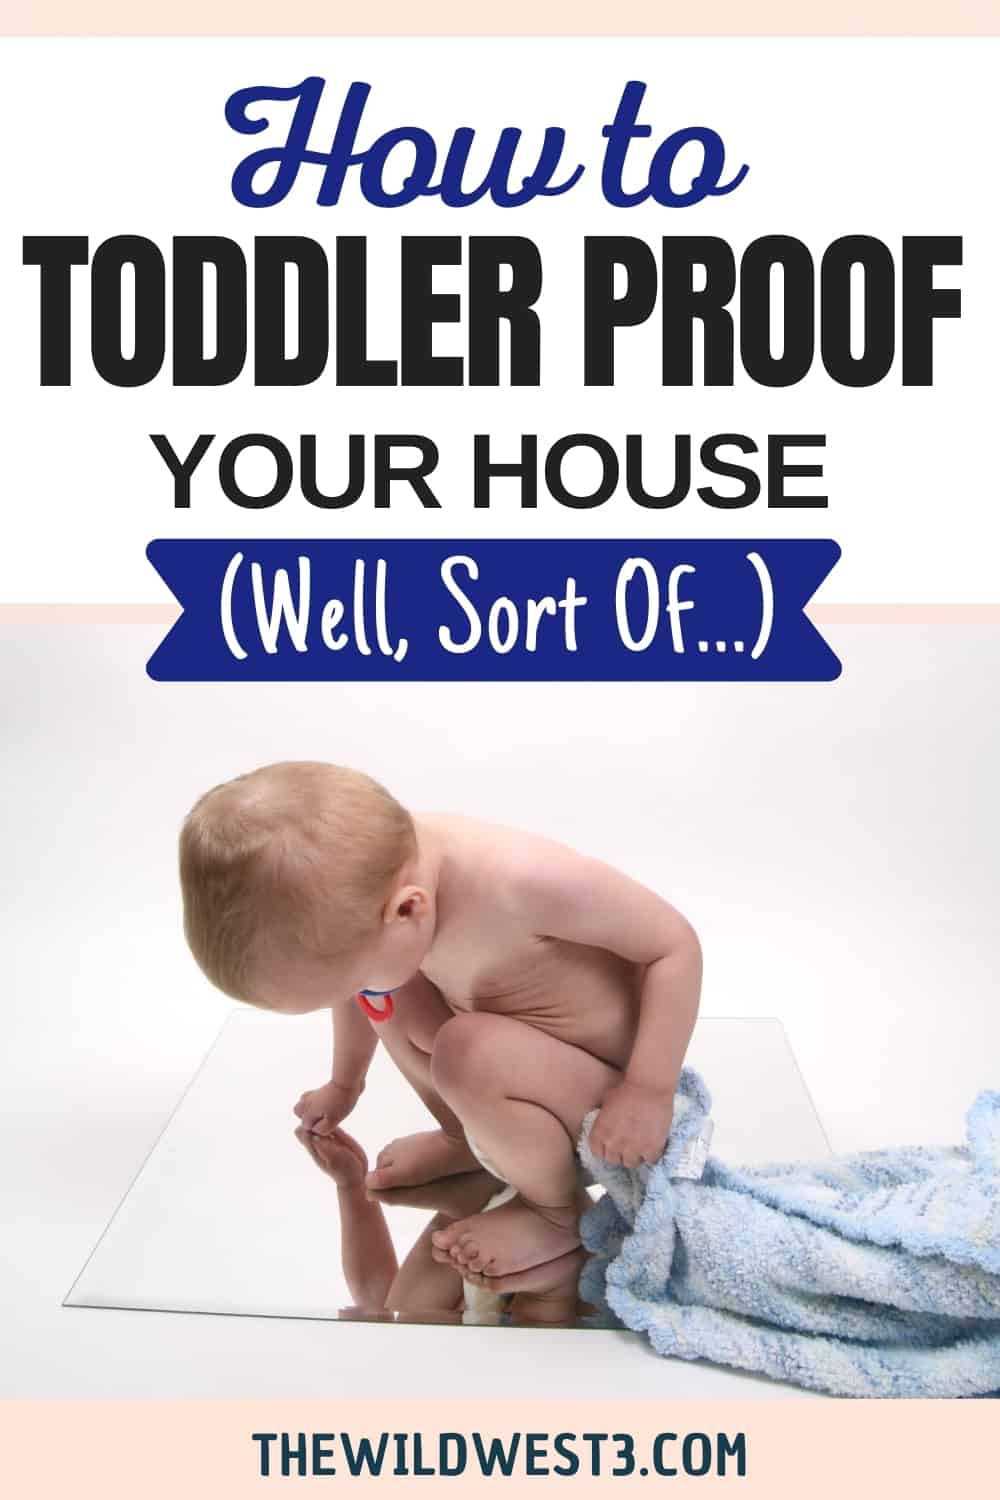 How to toddler proof your house pinterest image with a toddler walking